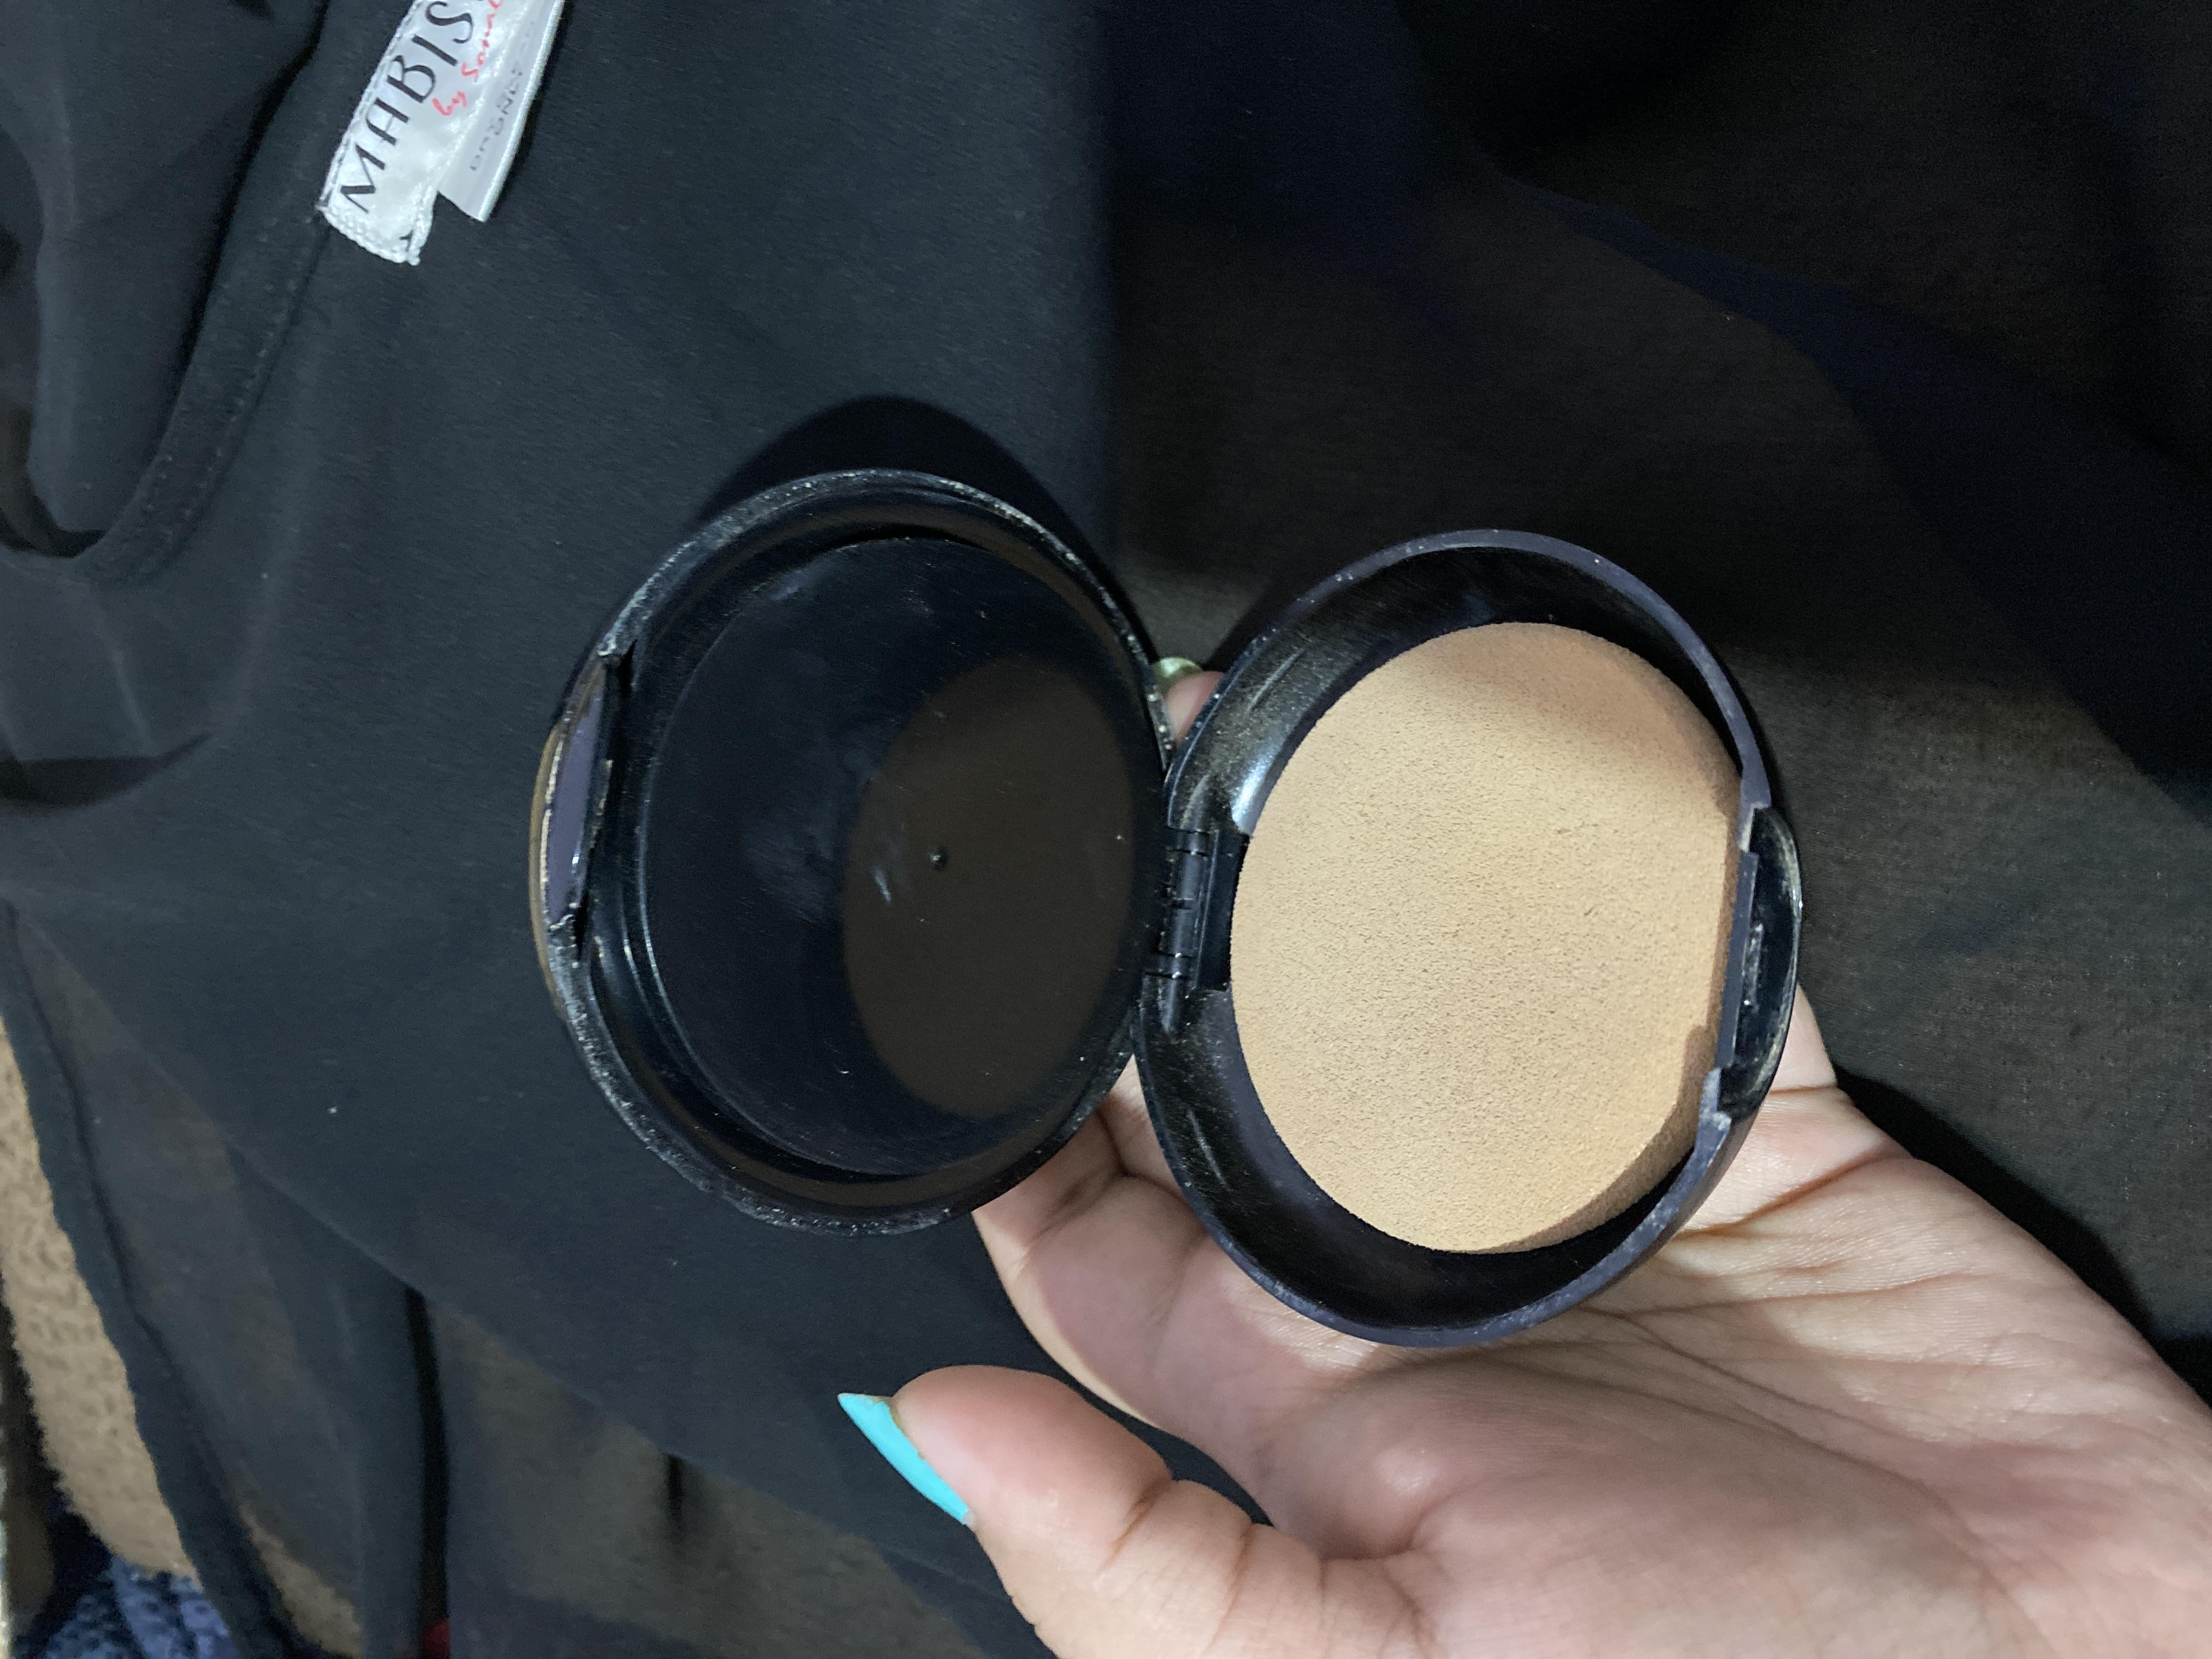 Lakme Absolute White Intense Wet & Dry Compact-Can be used as compact and foundation-By shachi_sharma-2